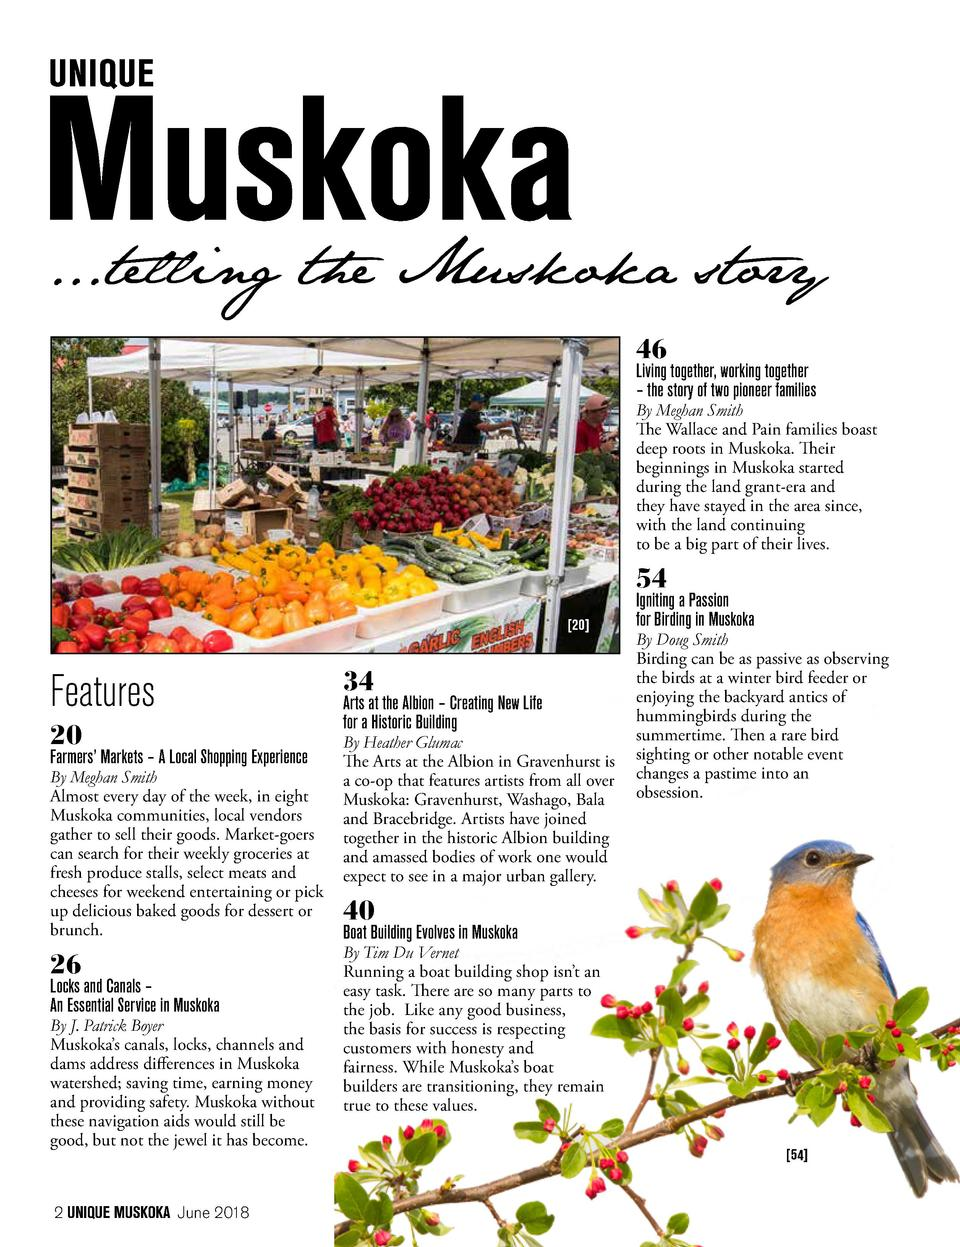 ...telling the Muskoka story 46  Living together, working together     the story of two pioneer families  By Meghan Smith ...